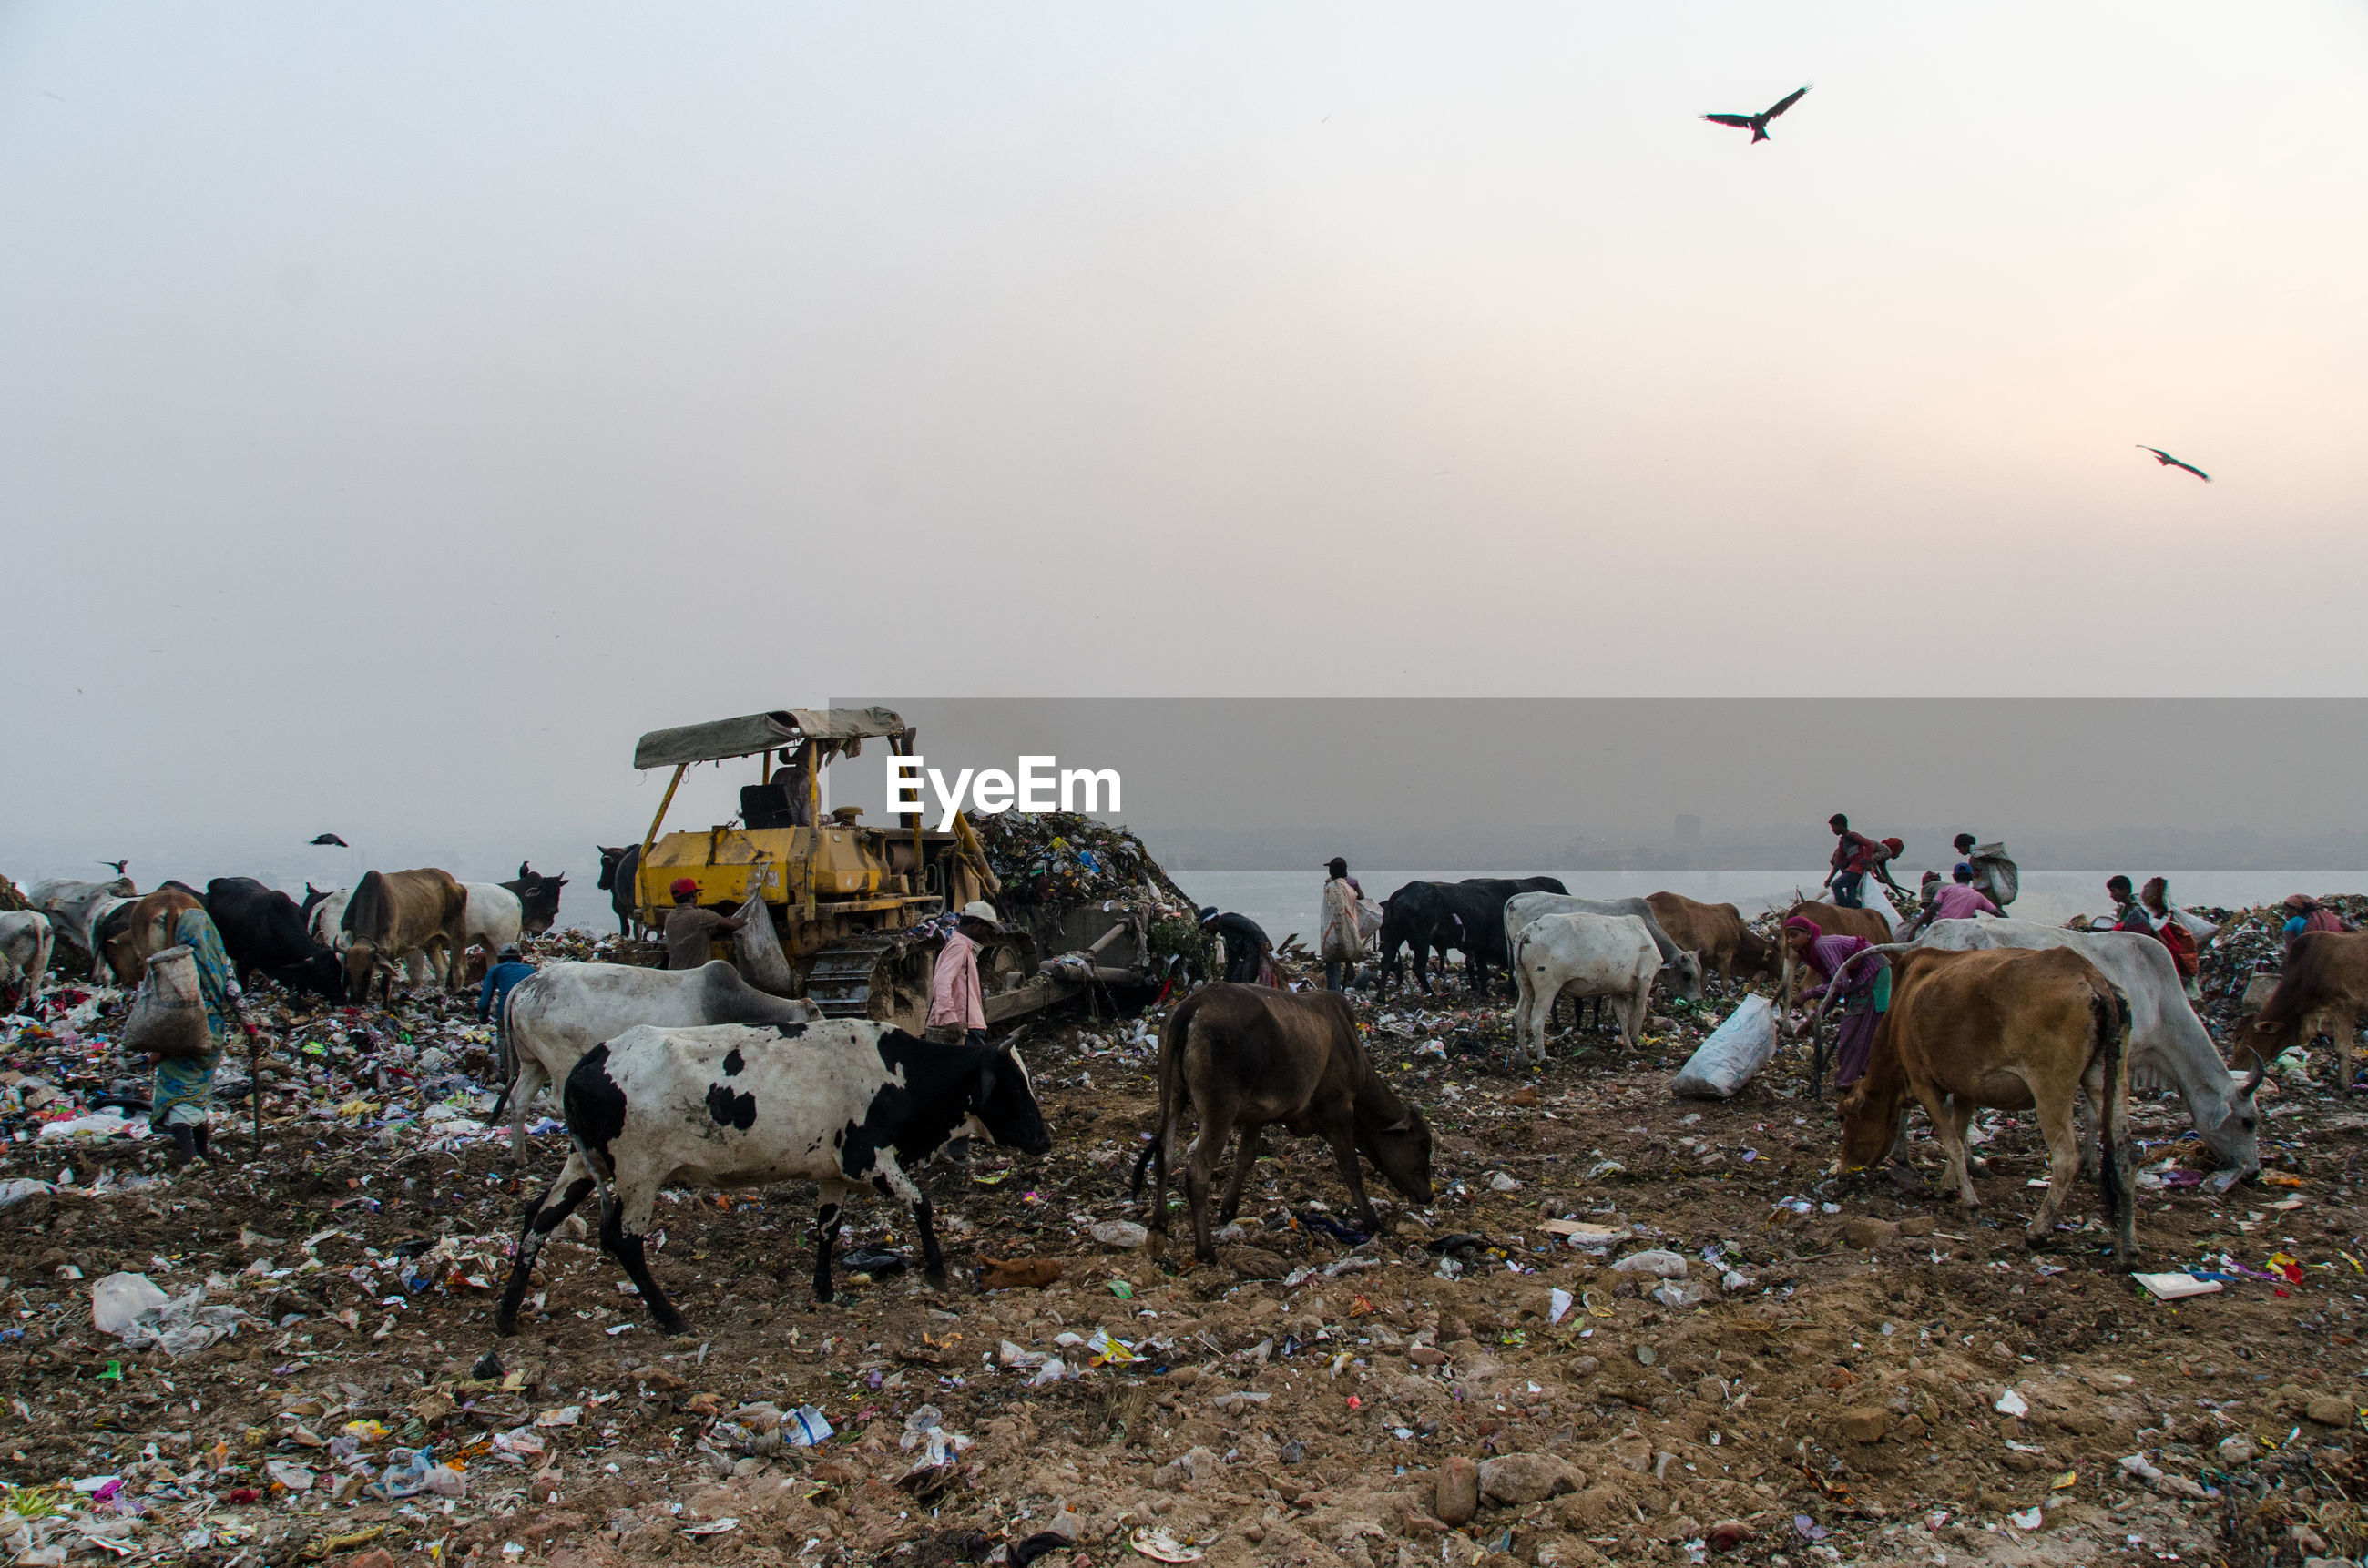 Landfill in new delhi india